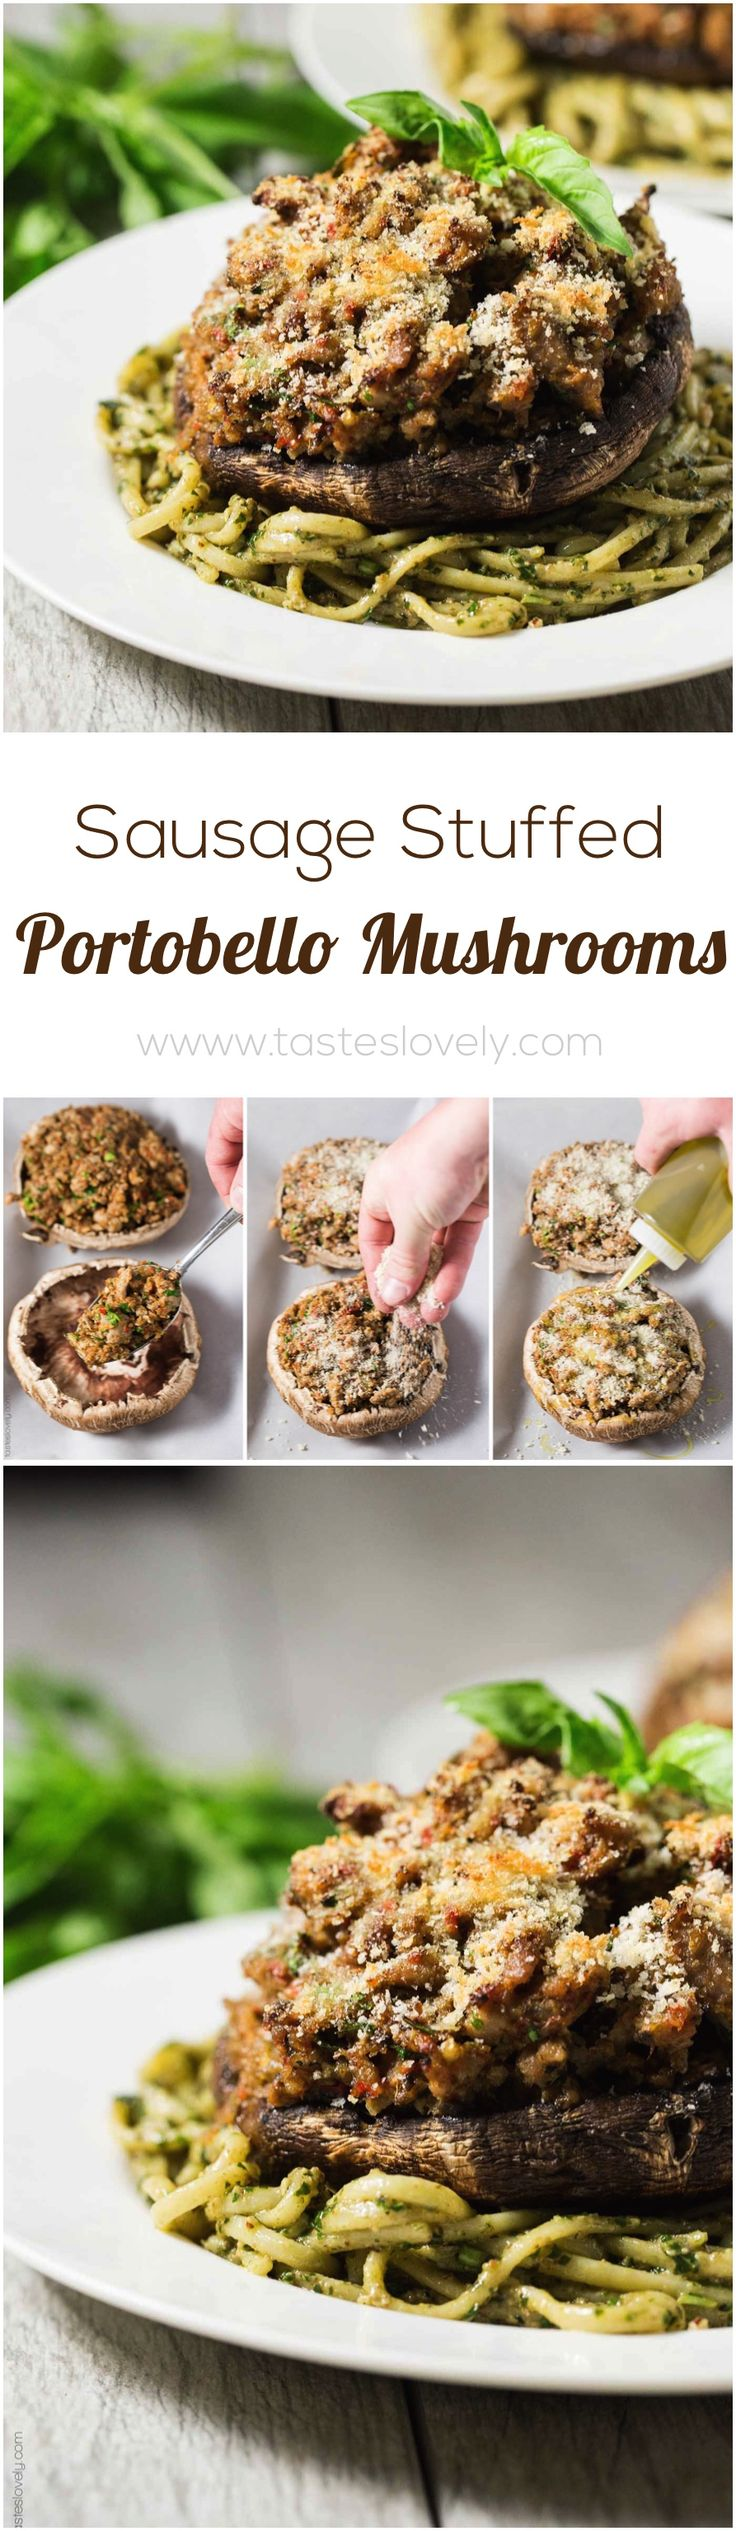 Sausage Stuffed Portobello Mushrooms (leave off the panko topping to make these low carb, paleo, gluten free and Whole30!)